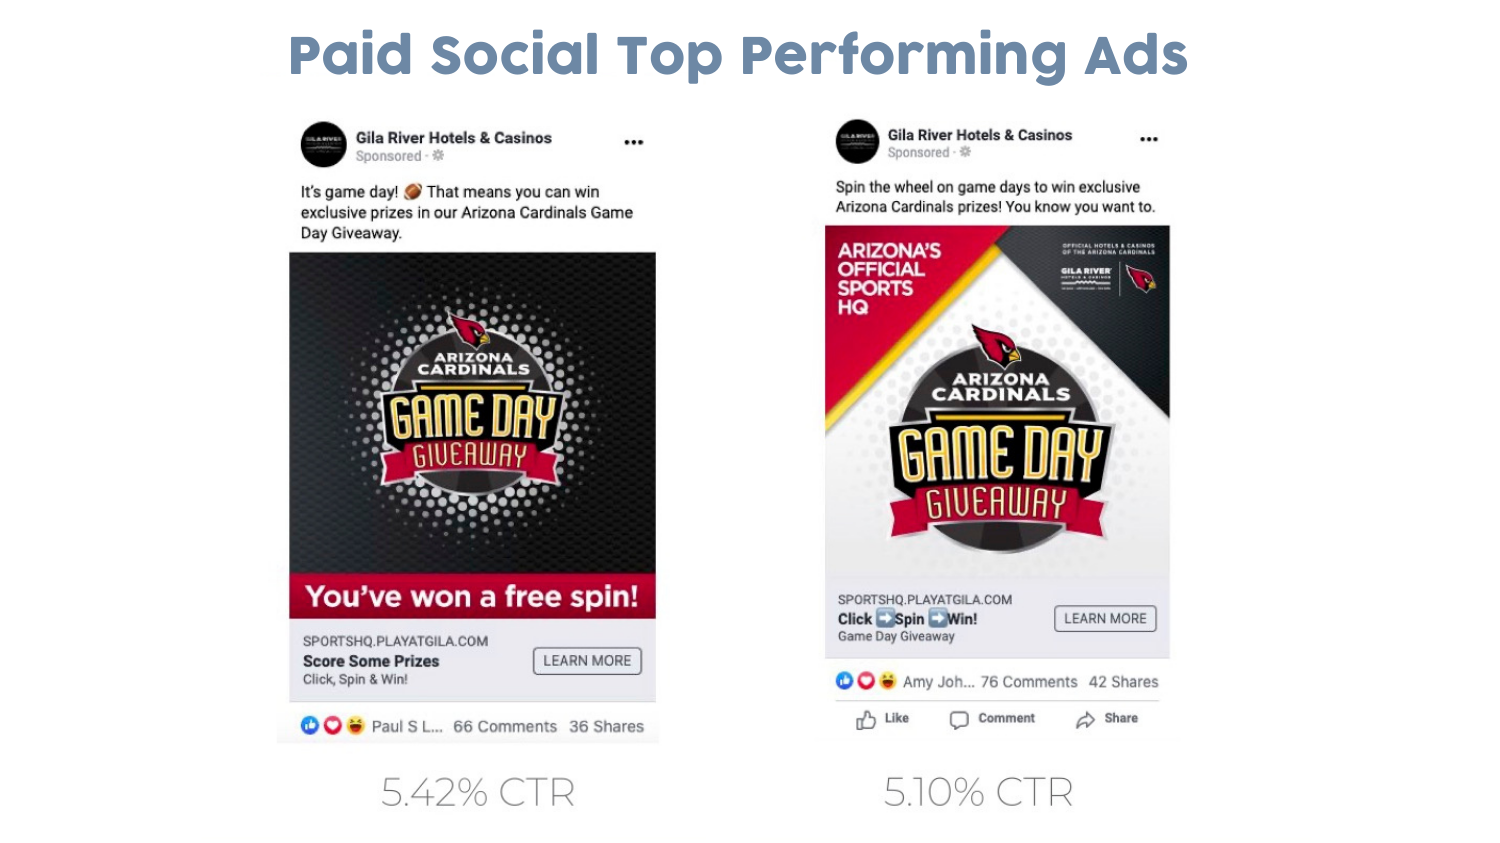 5% CTR on Facebook Ads for the Spin-to-Win with Tradable Bits